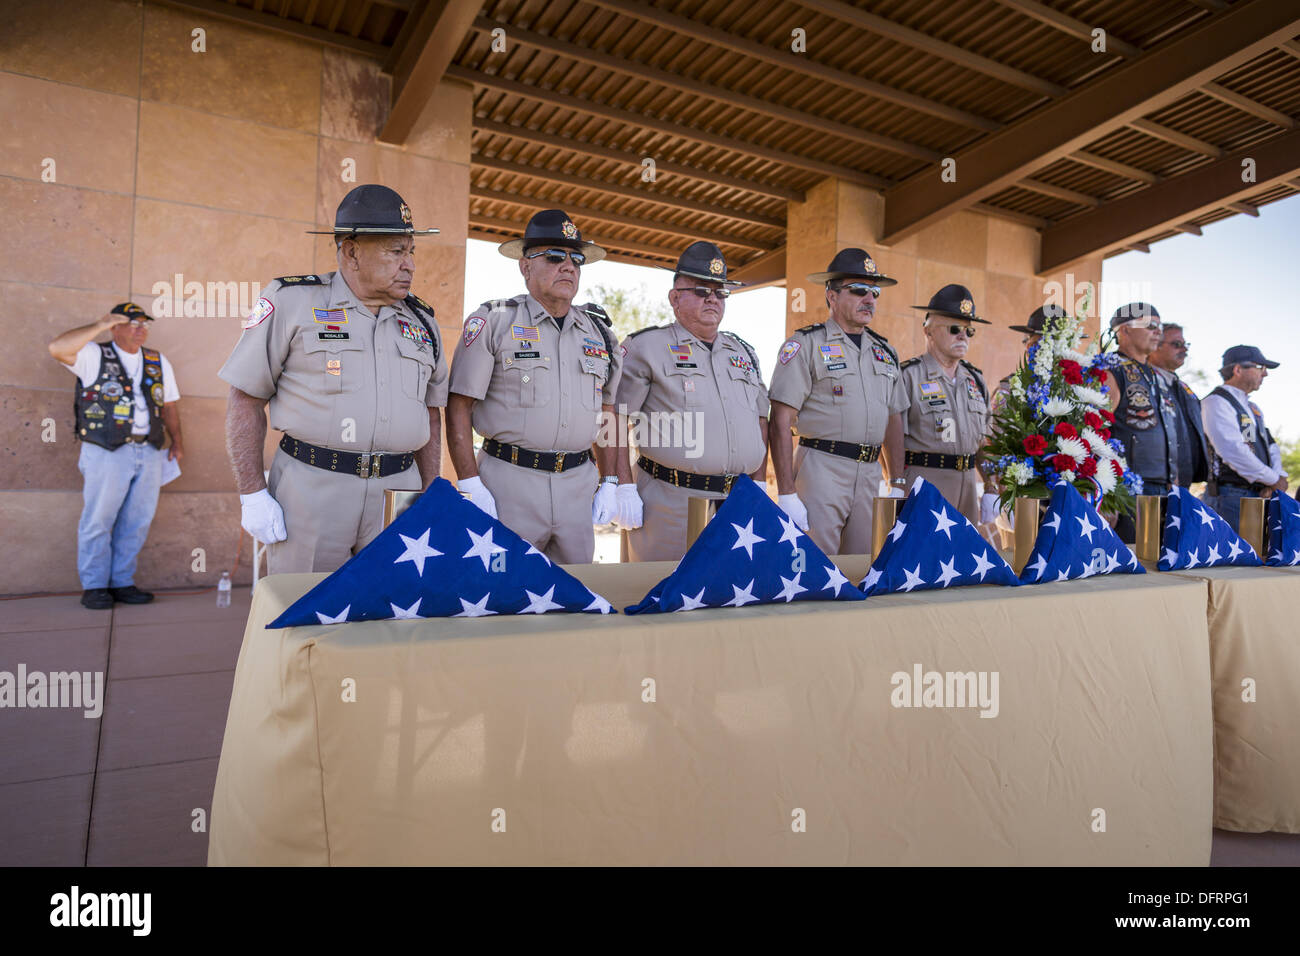 Phoenix, Arizona, USA. 8th Oct, 2013. Members of Veterans Of Foreign Wars honor guard present the urns containing Stock Photo